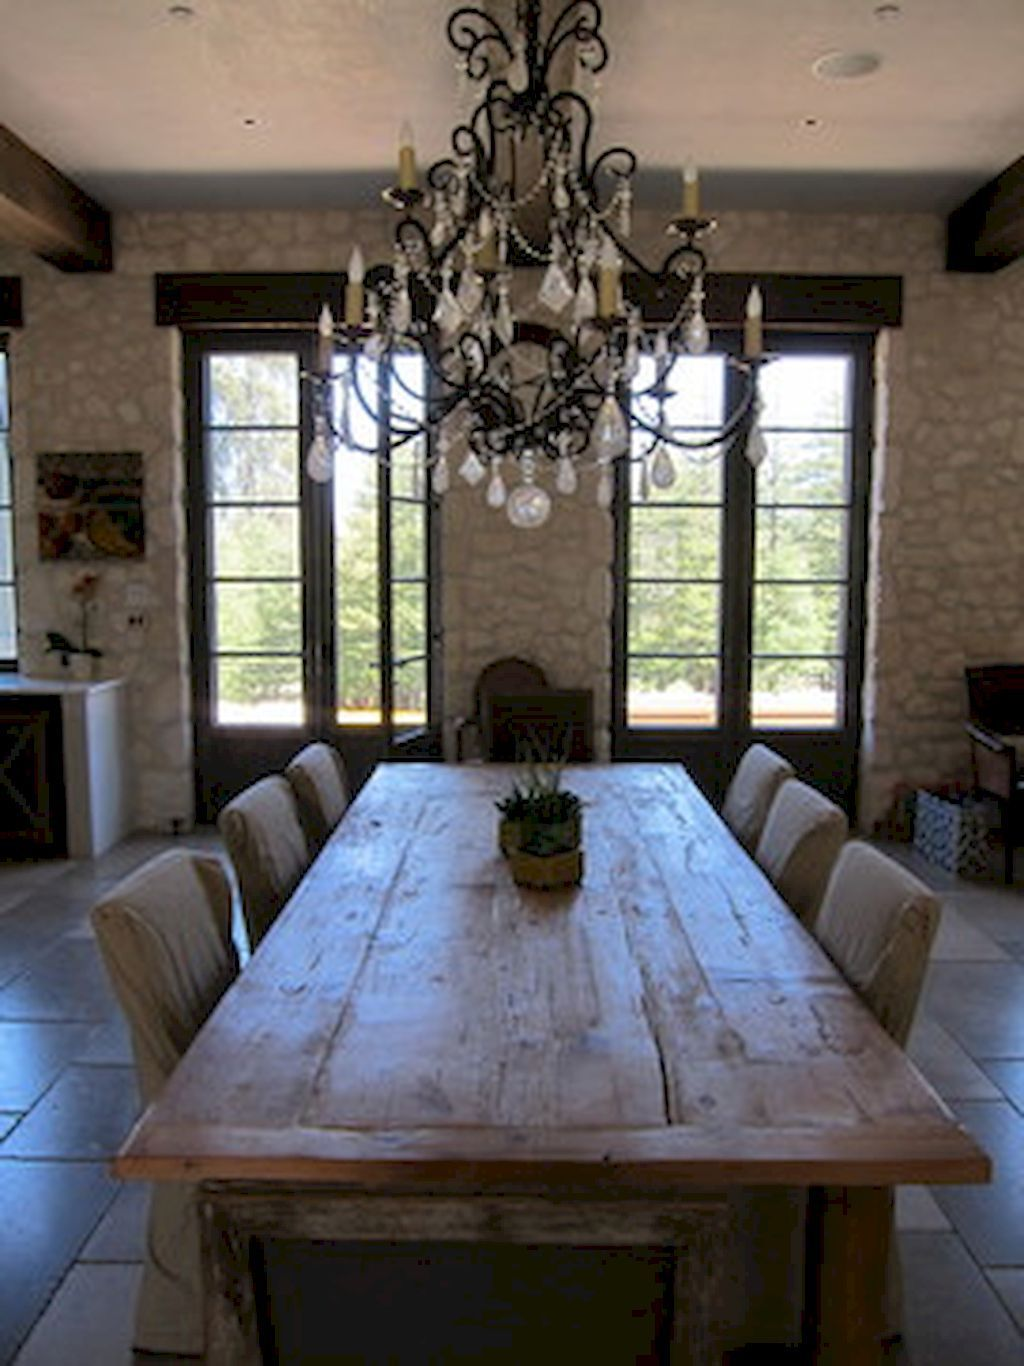 French Country Dining Room Table and Decor Ideas (58 ...